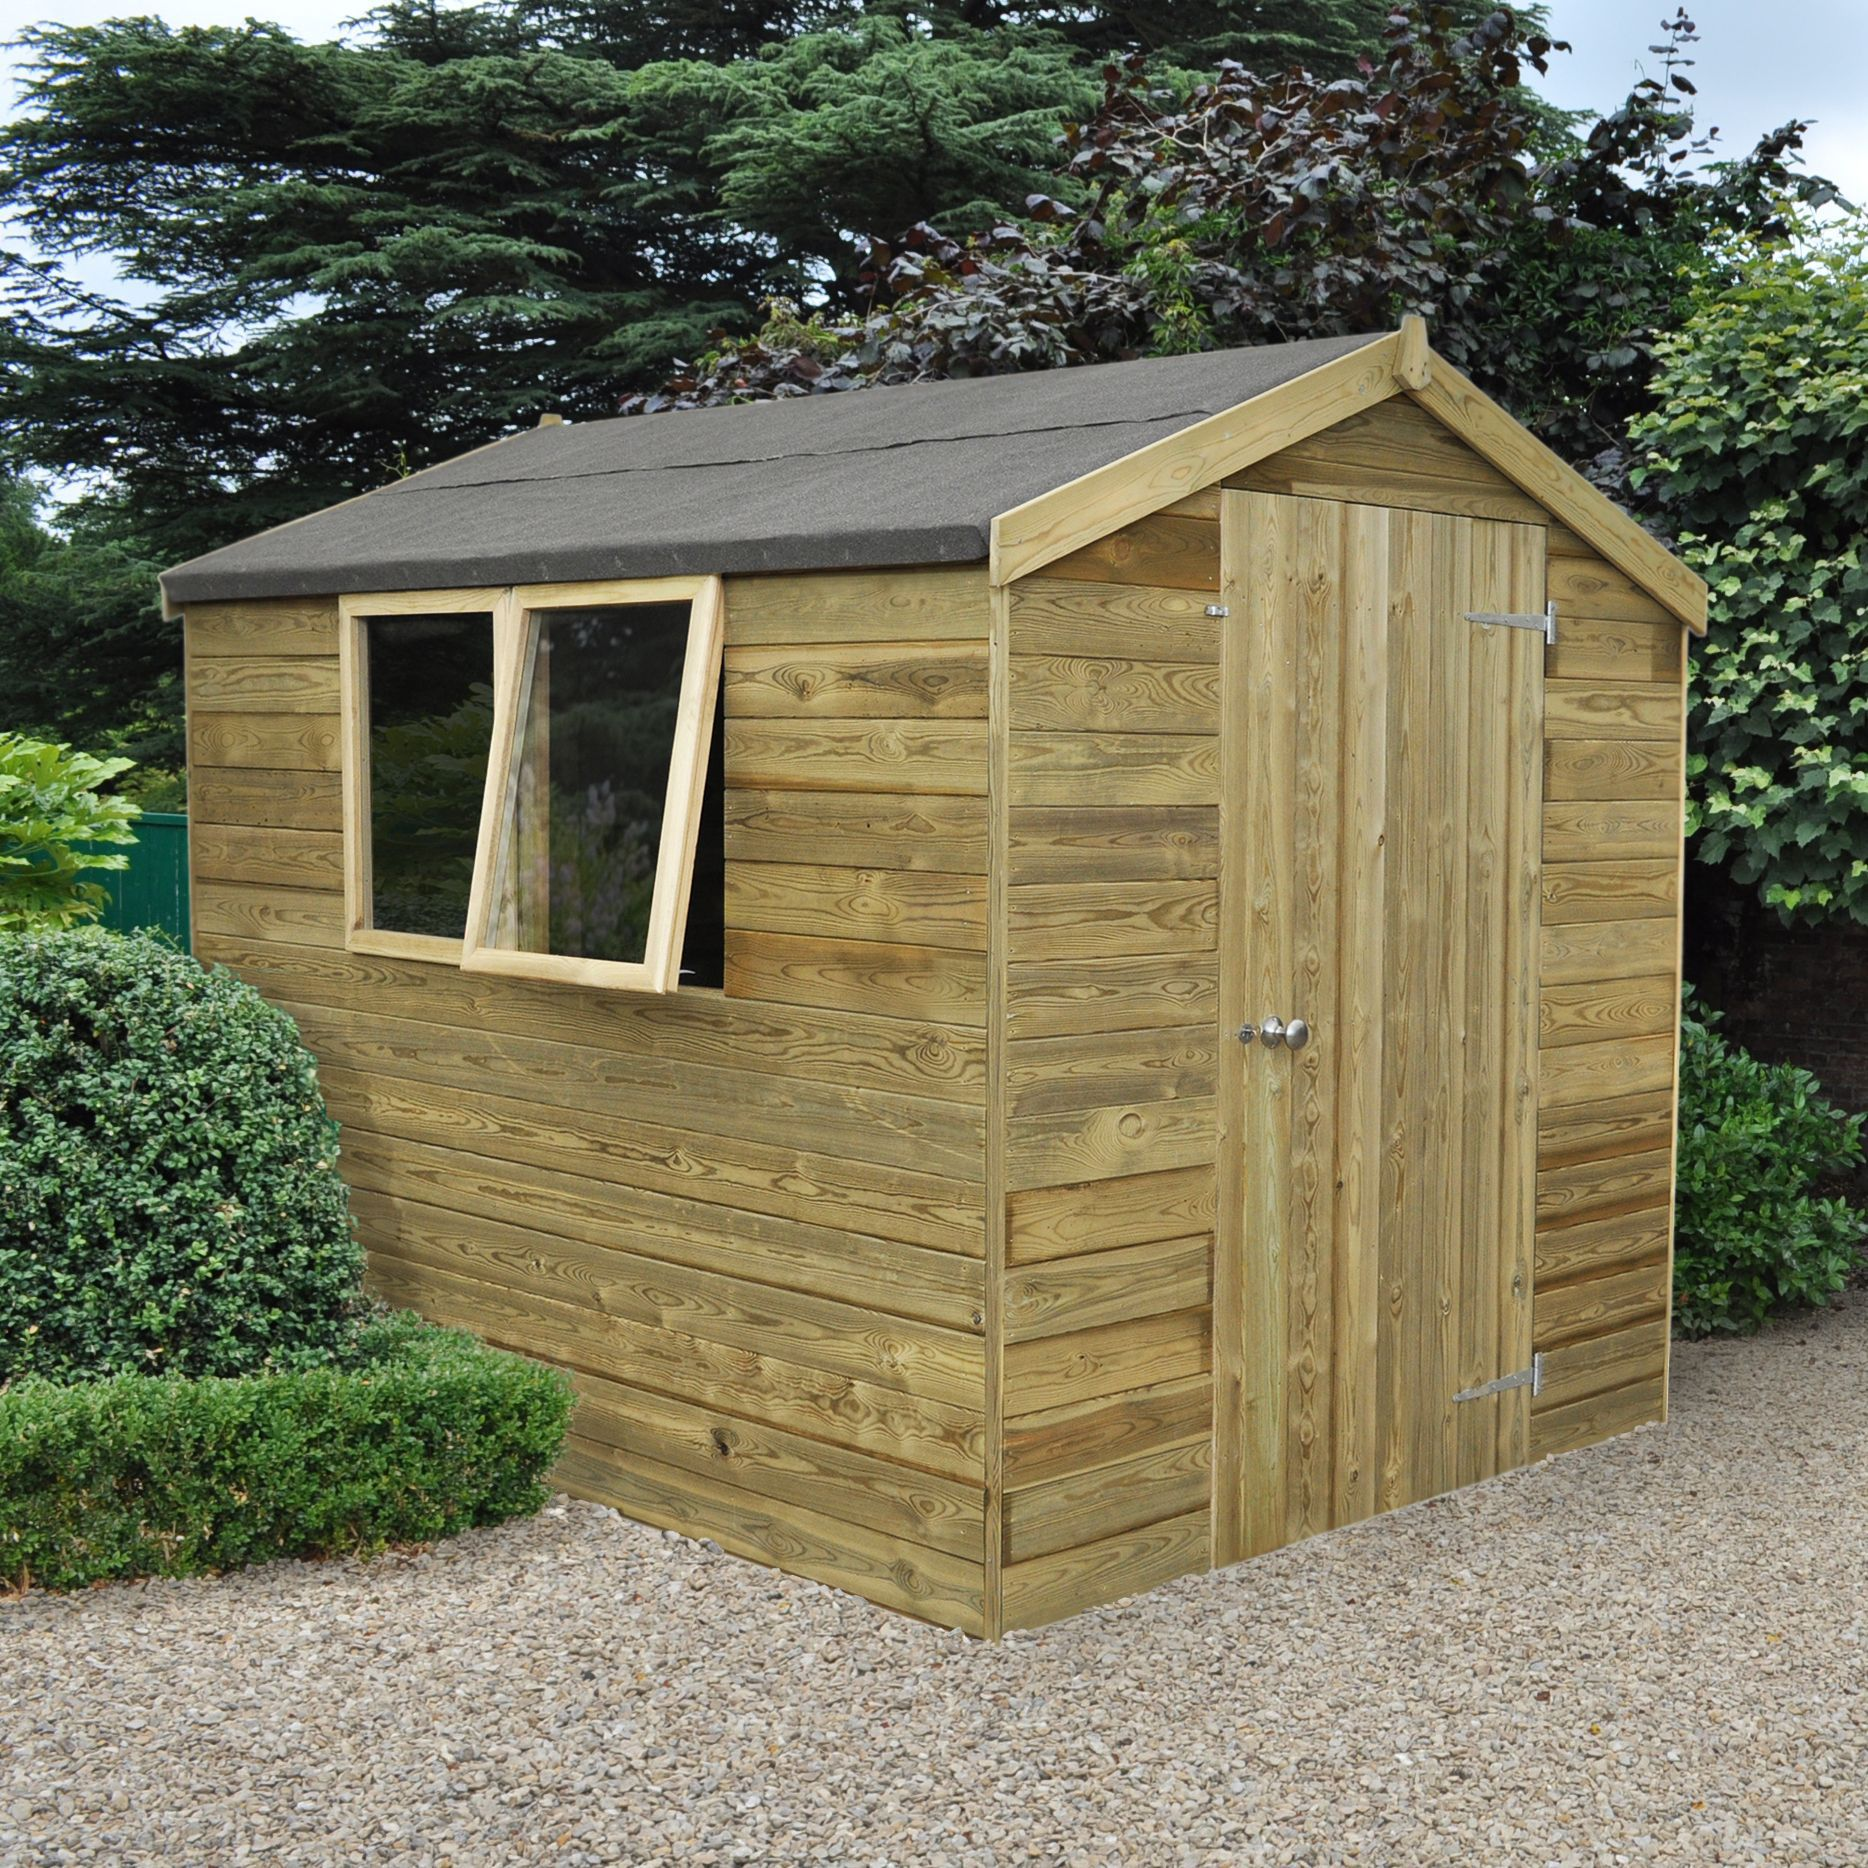 Tongue And Groove B And Q: 8X6 Forest Apex Tongue & Groove Wooden Shed